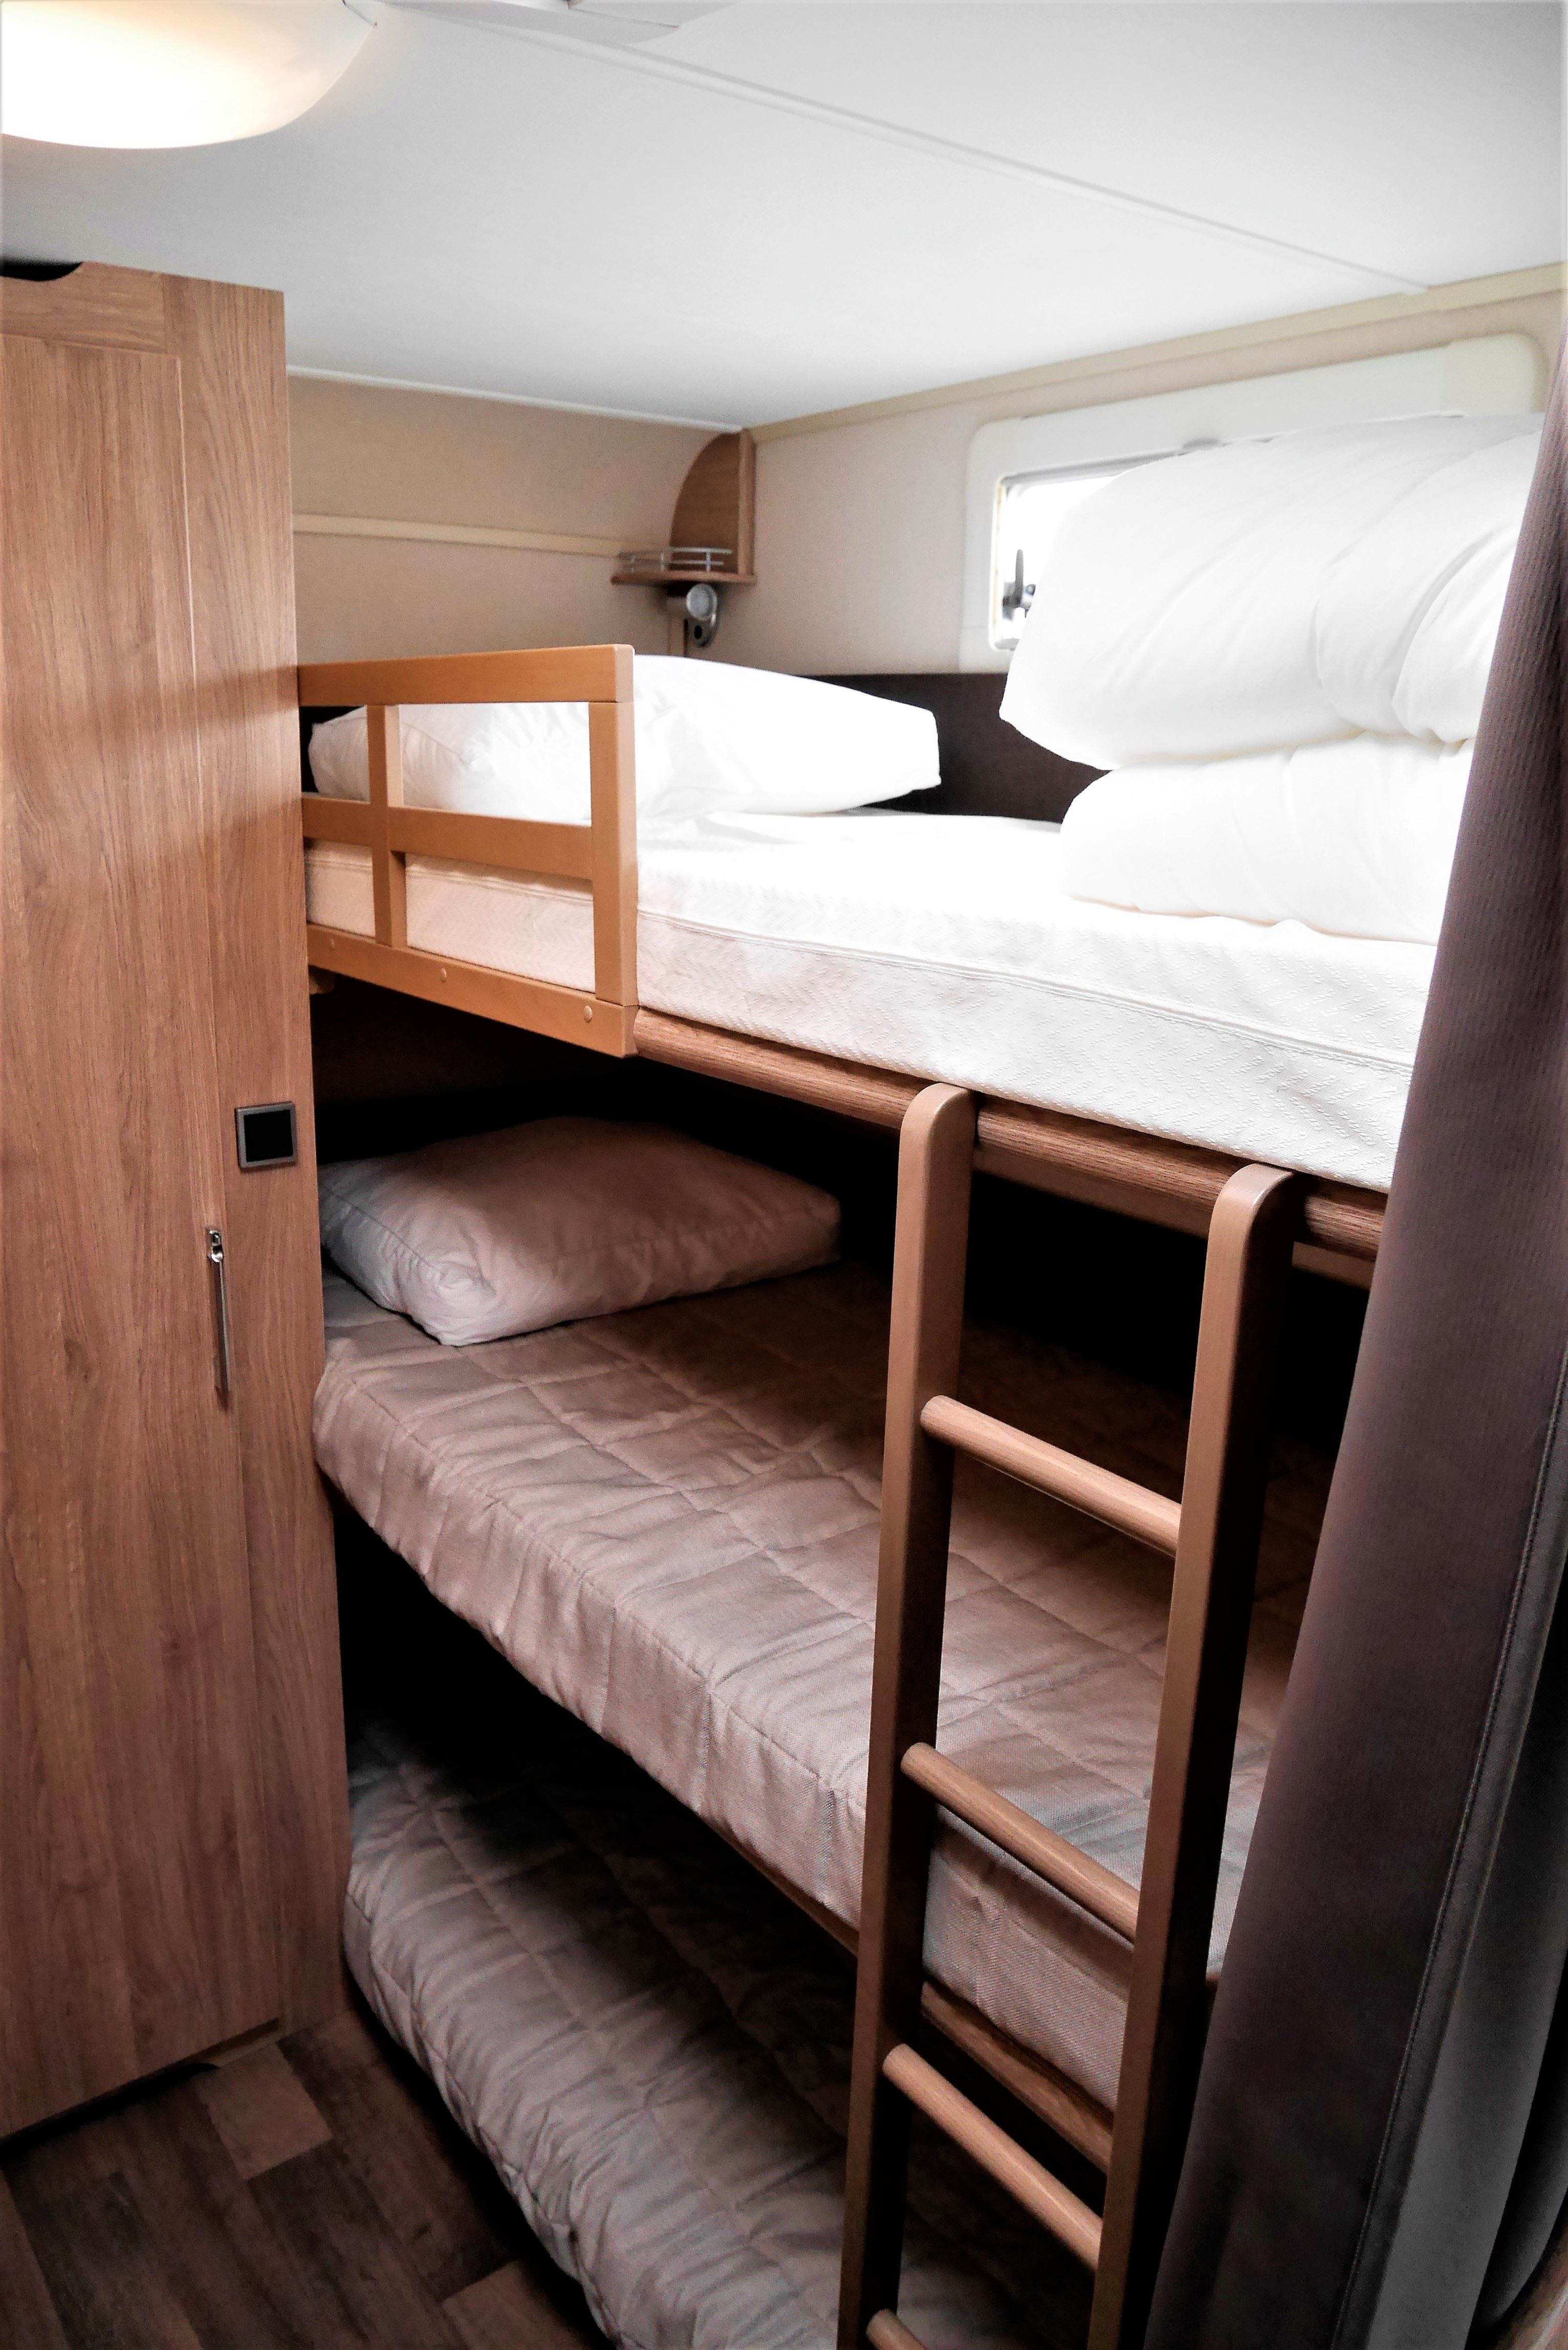 Modern and compact experience - Caravan for 5 persons - LyngenTourist